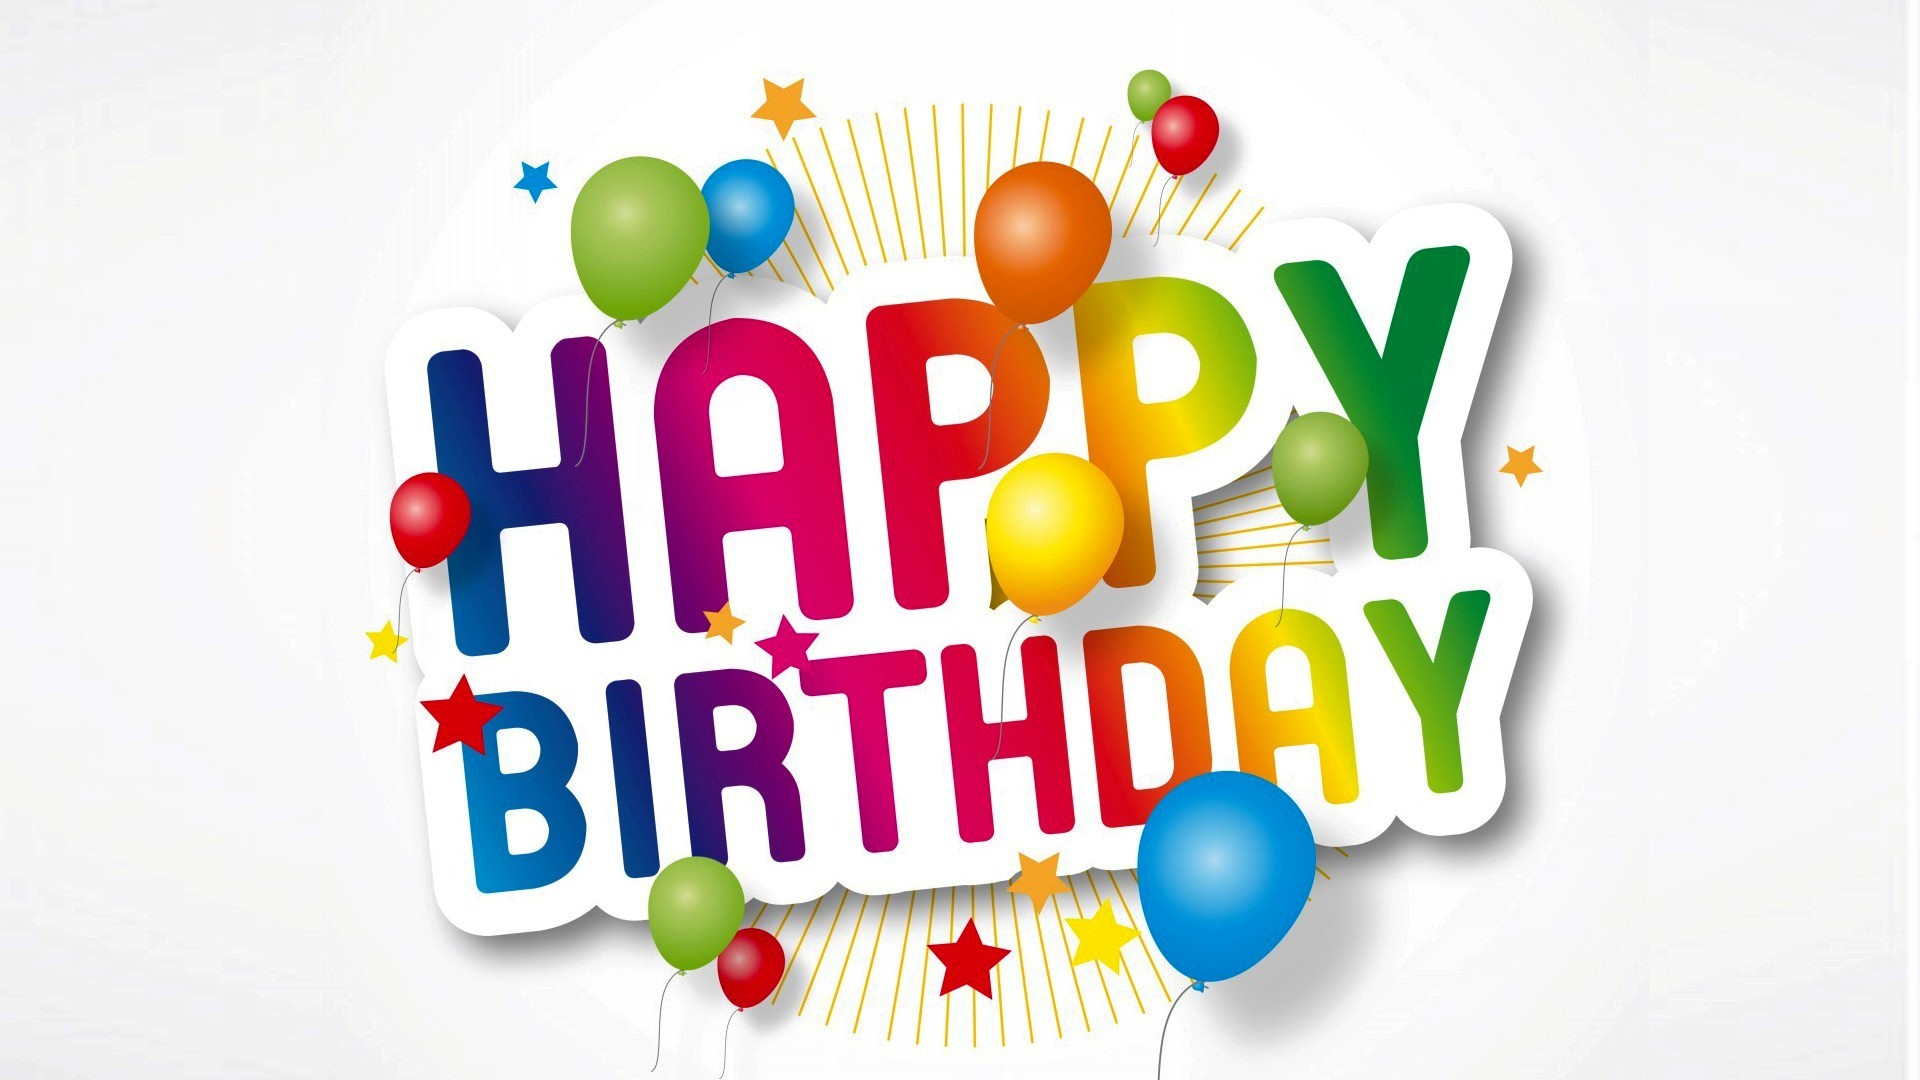 Happy birthday wallpapers 65 background pictures - Happy birthday balloon images hd ...